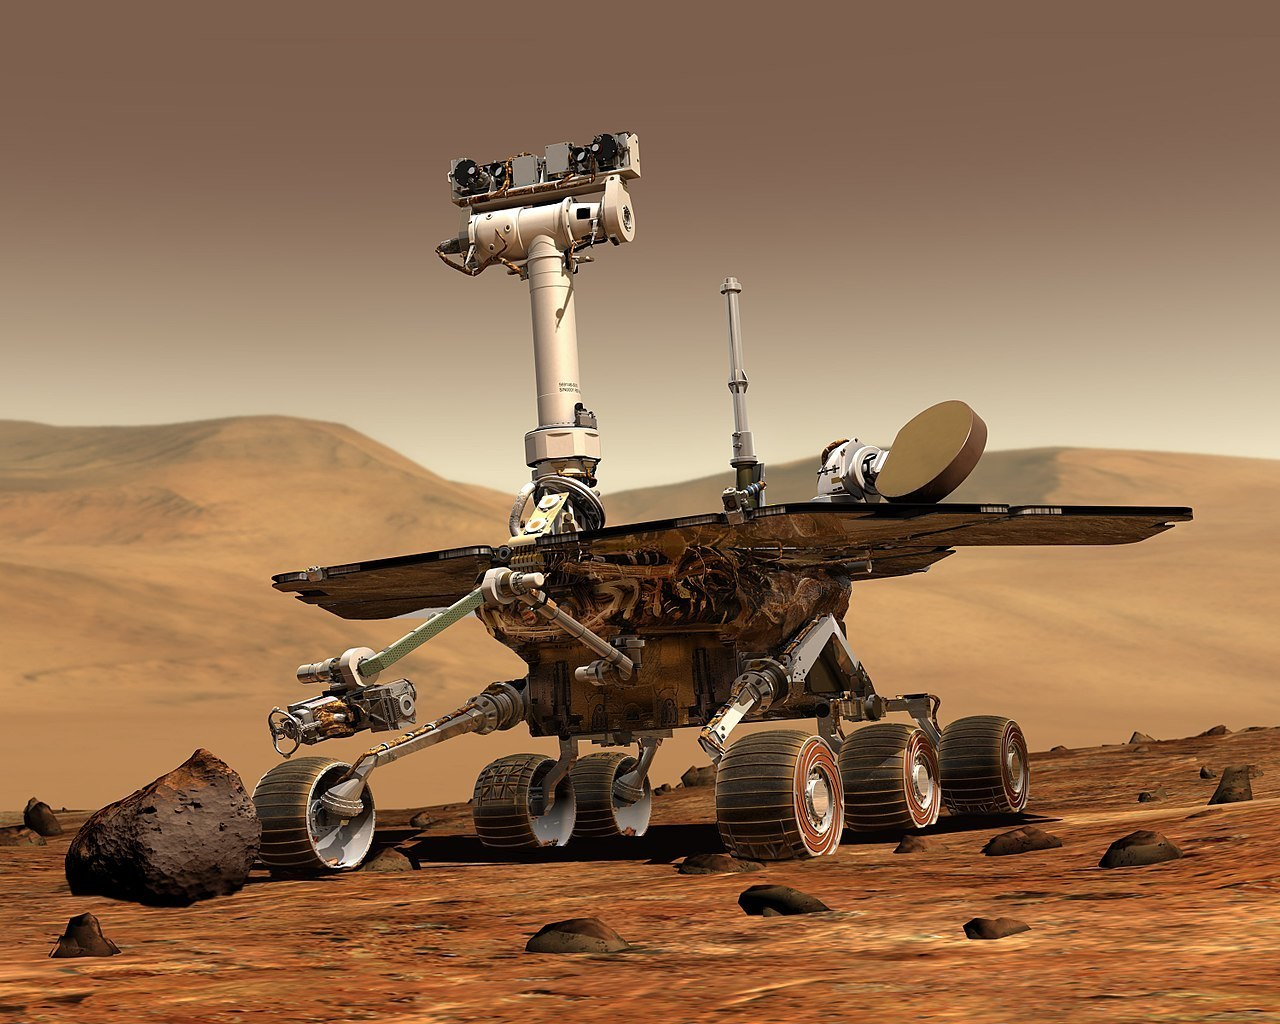 Artist's concept of the Mars Exploration Roves, Spirit and Opportunity